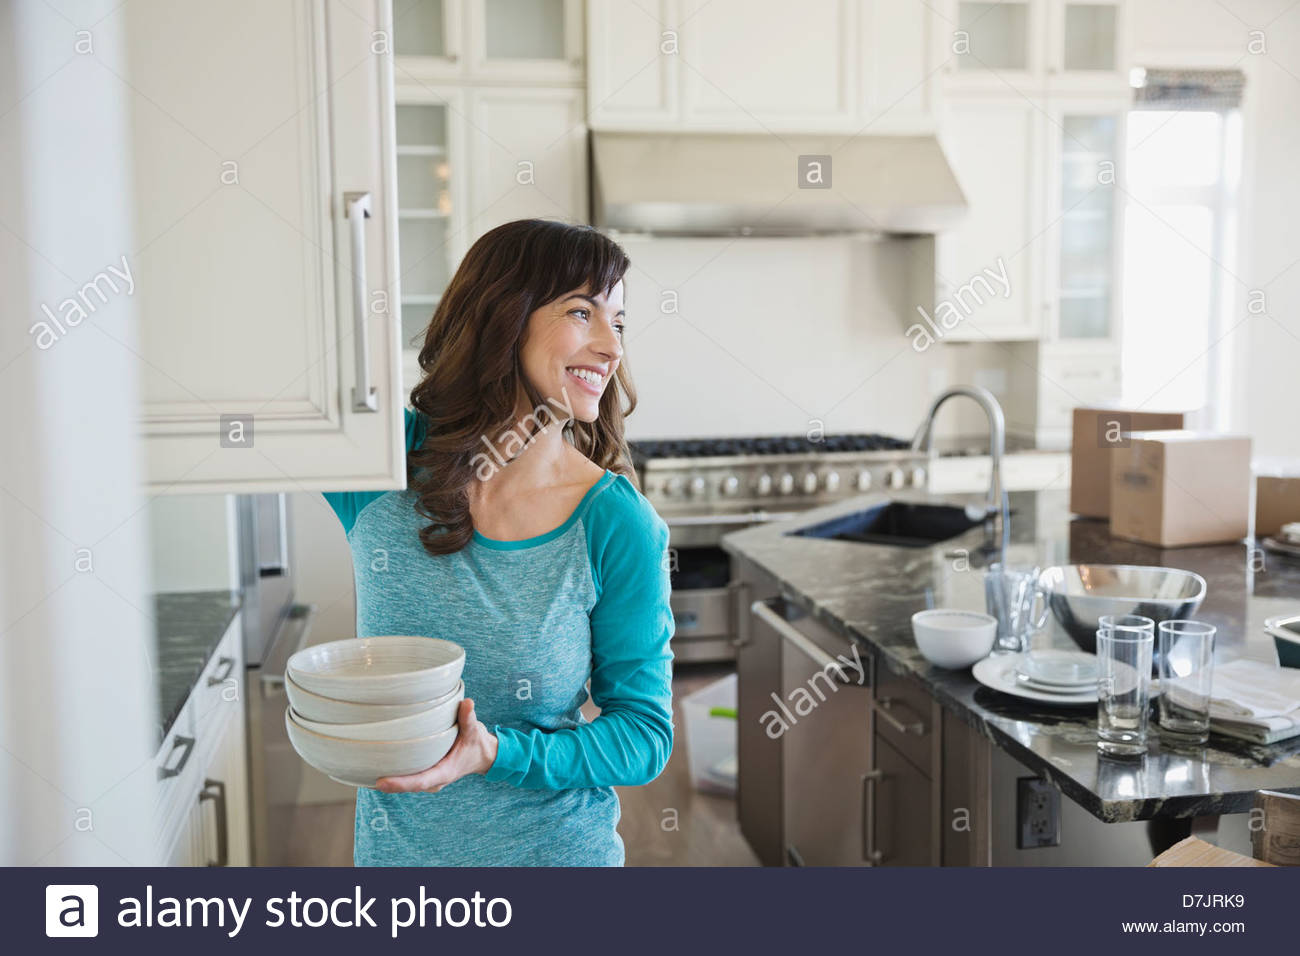 Woman putting away dishes in new home - Stock Image